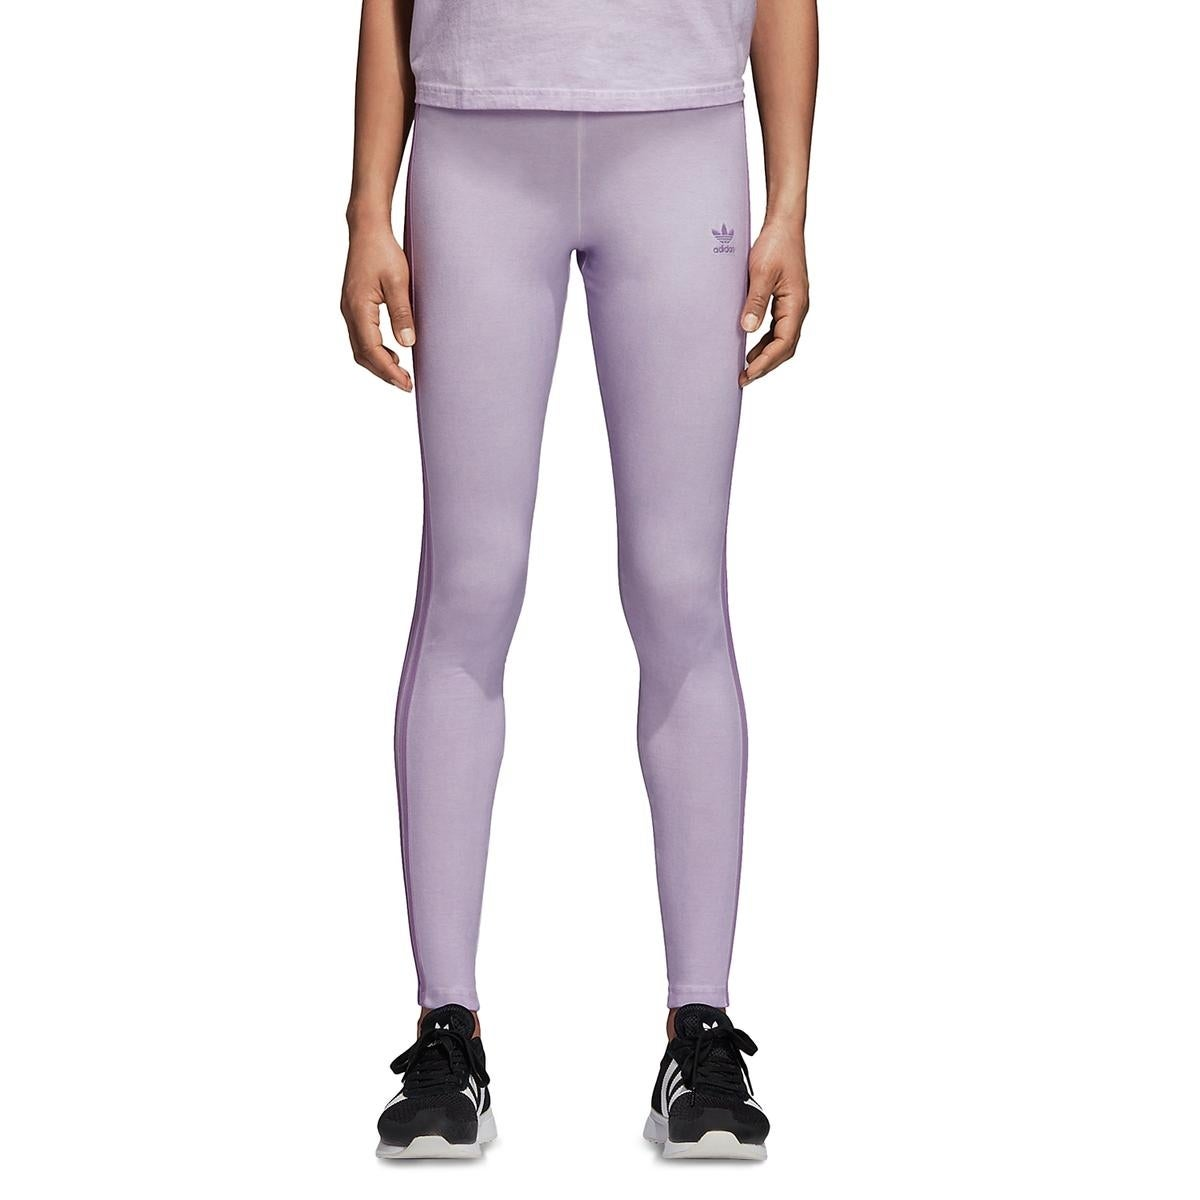 6578ffb98e2 Shop adidas Originals Womens Athletic Leggings Fitness Running - Free  Shipping On Orders Over $45 - Overstock - 28276430